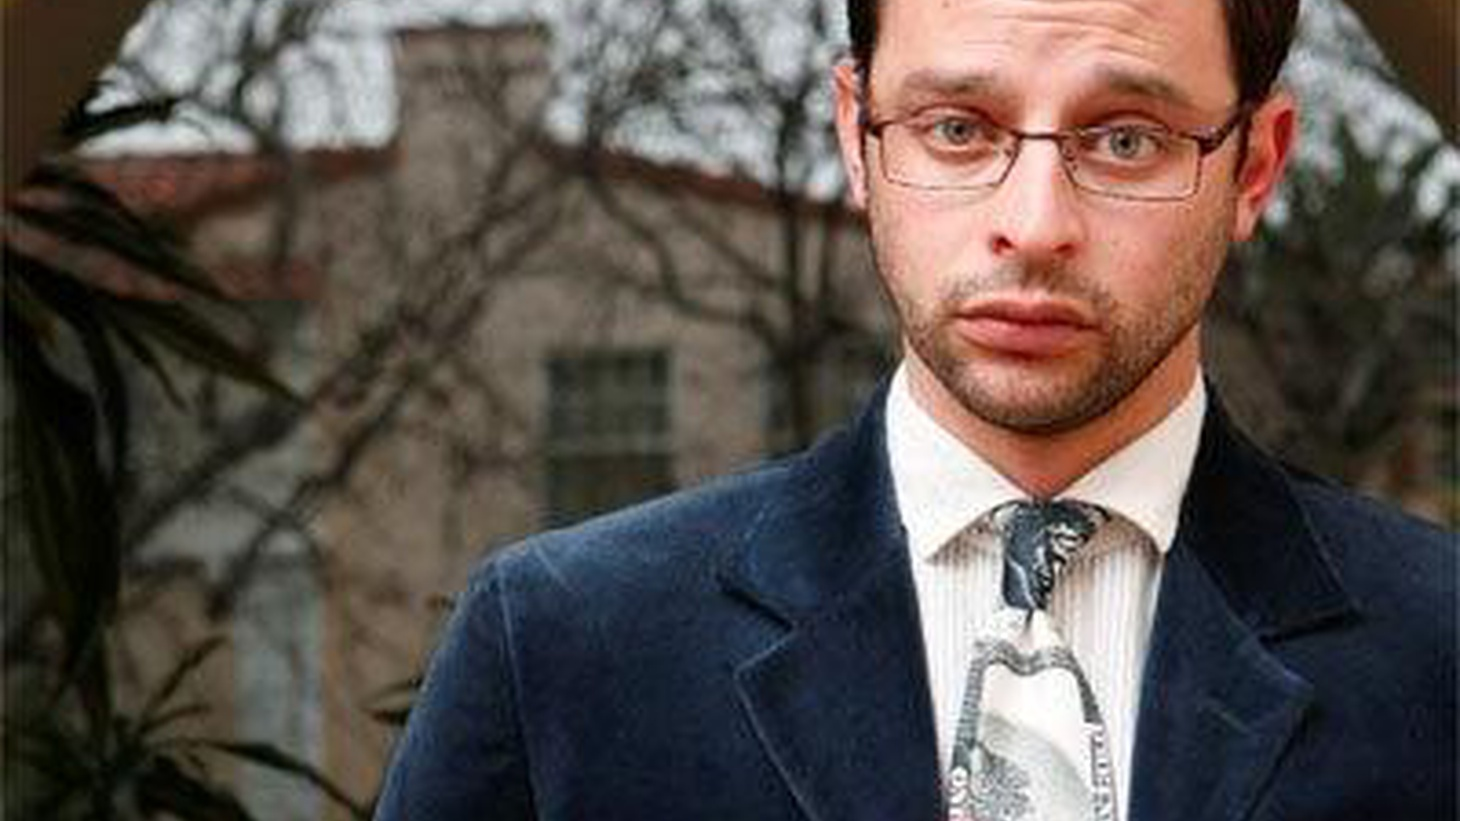 Nick Kroll has an accident.